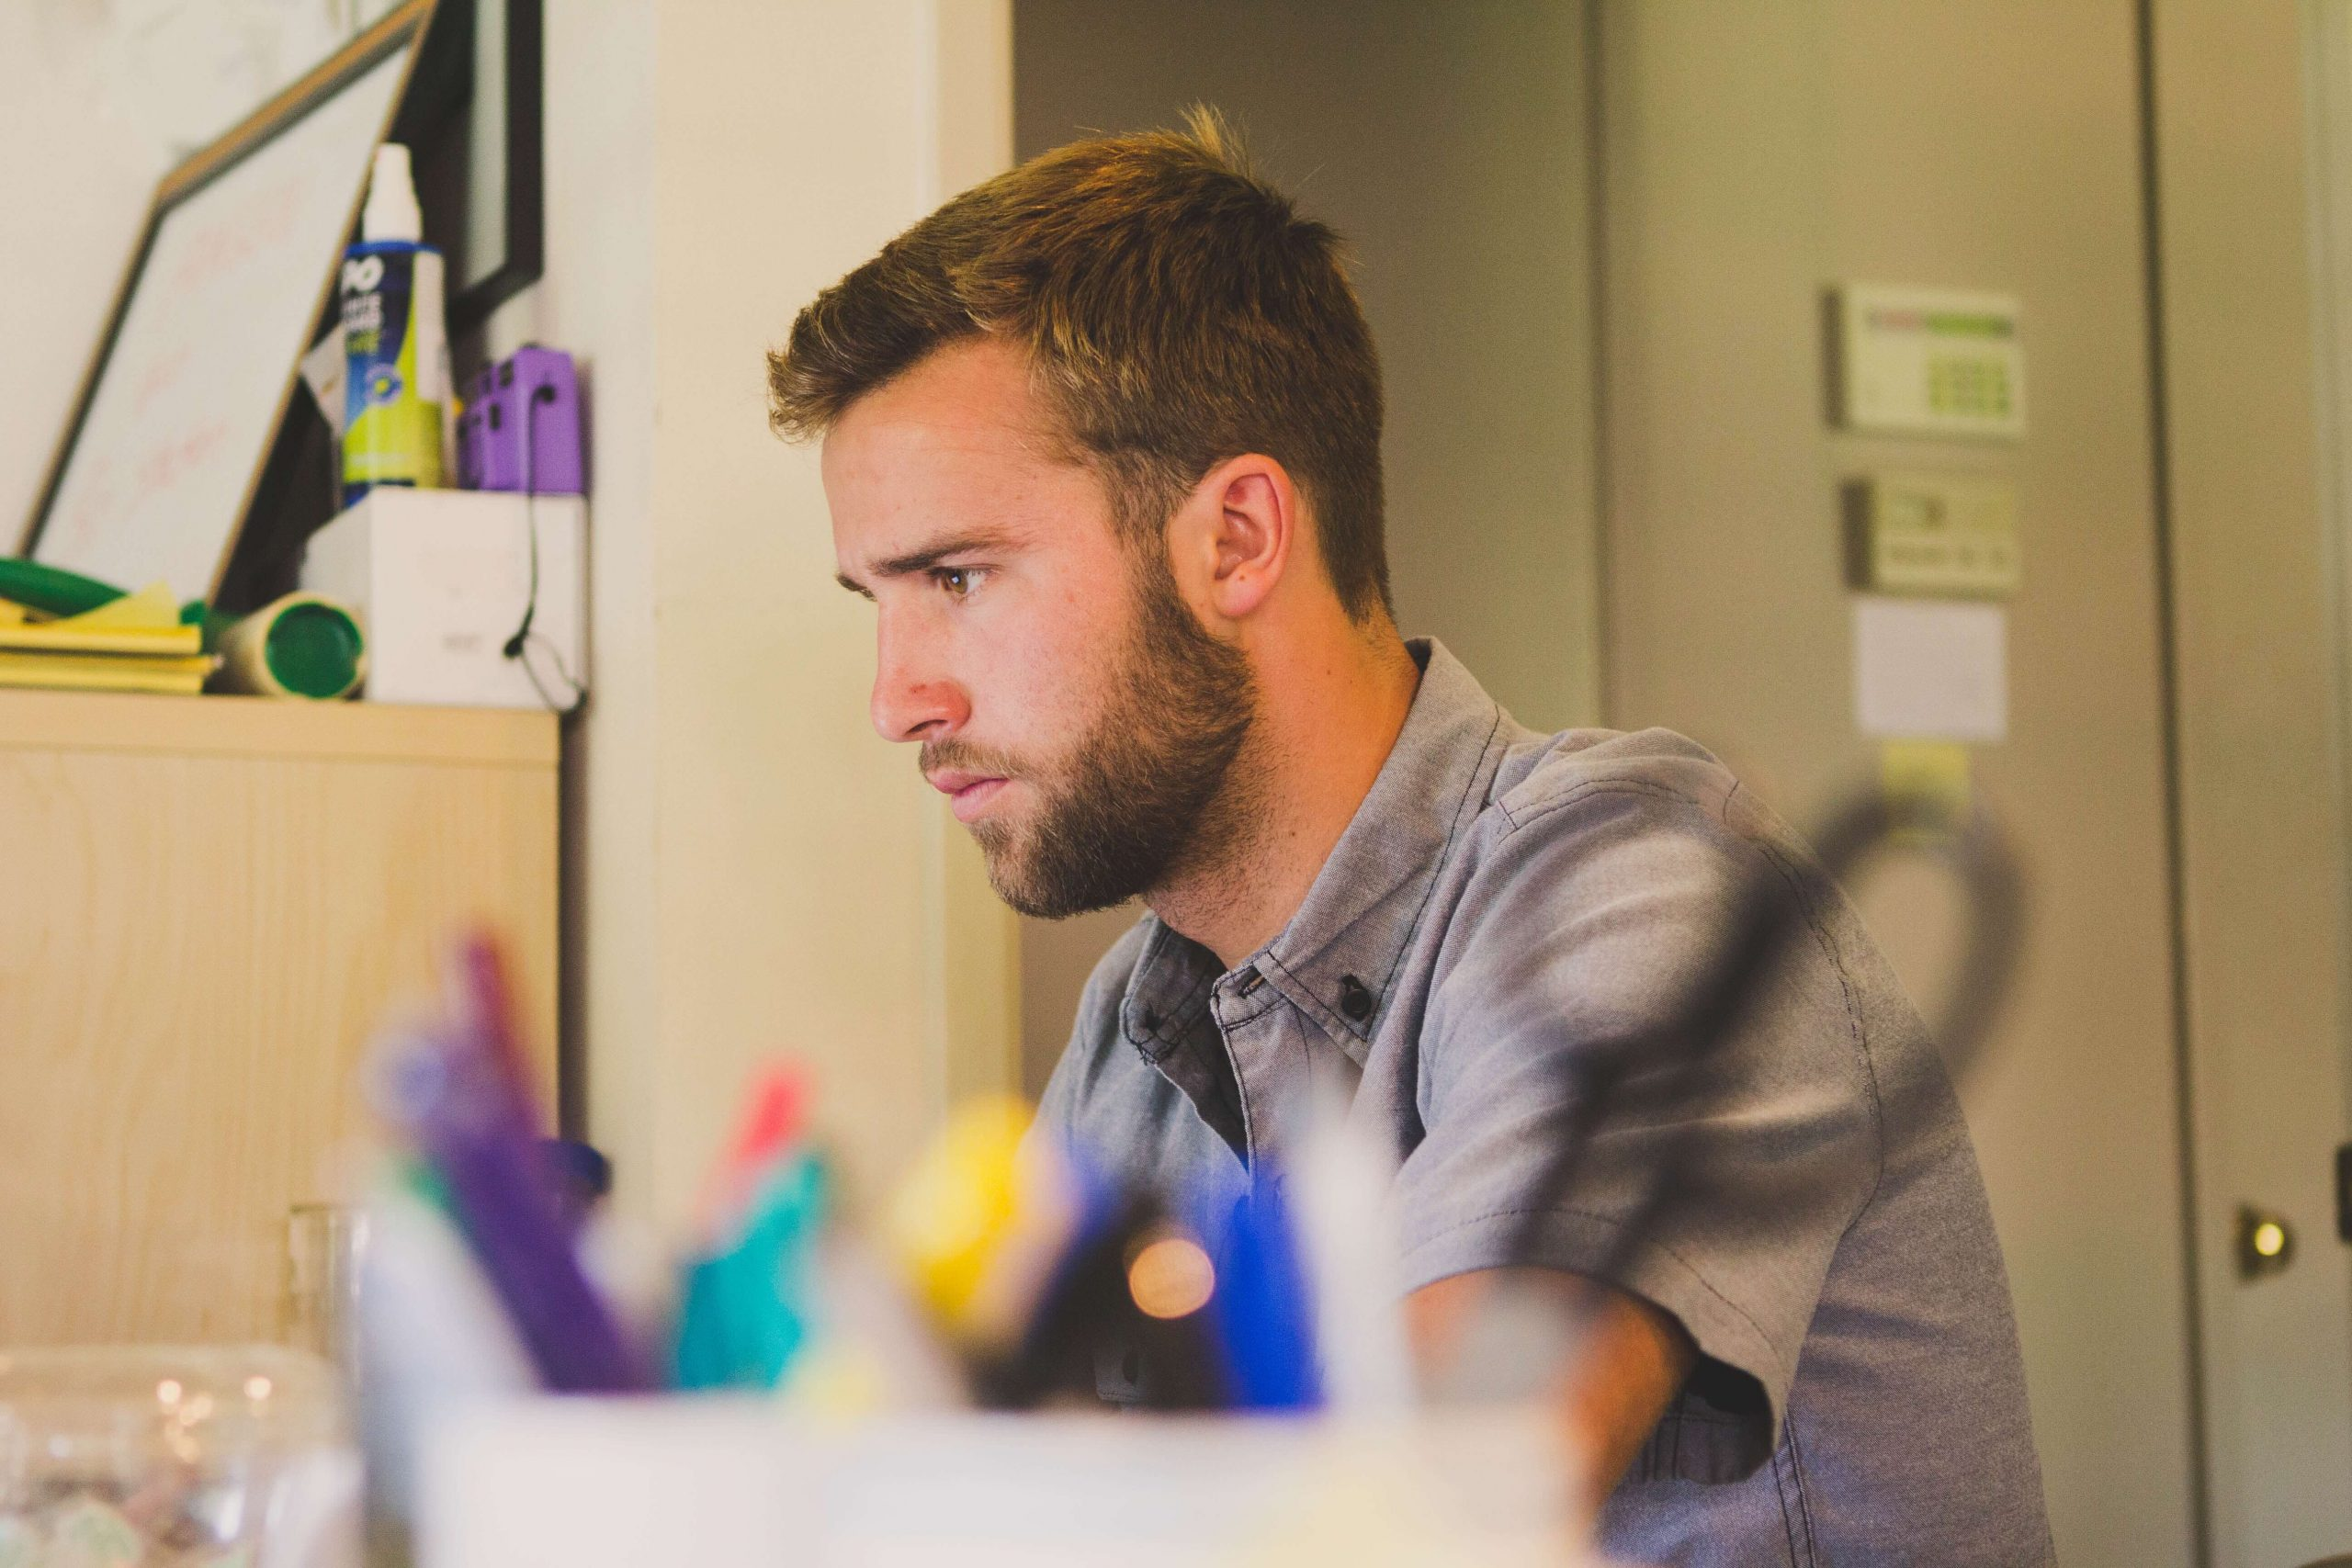 Student looks concentratedly at the computer as he compares private student loan options